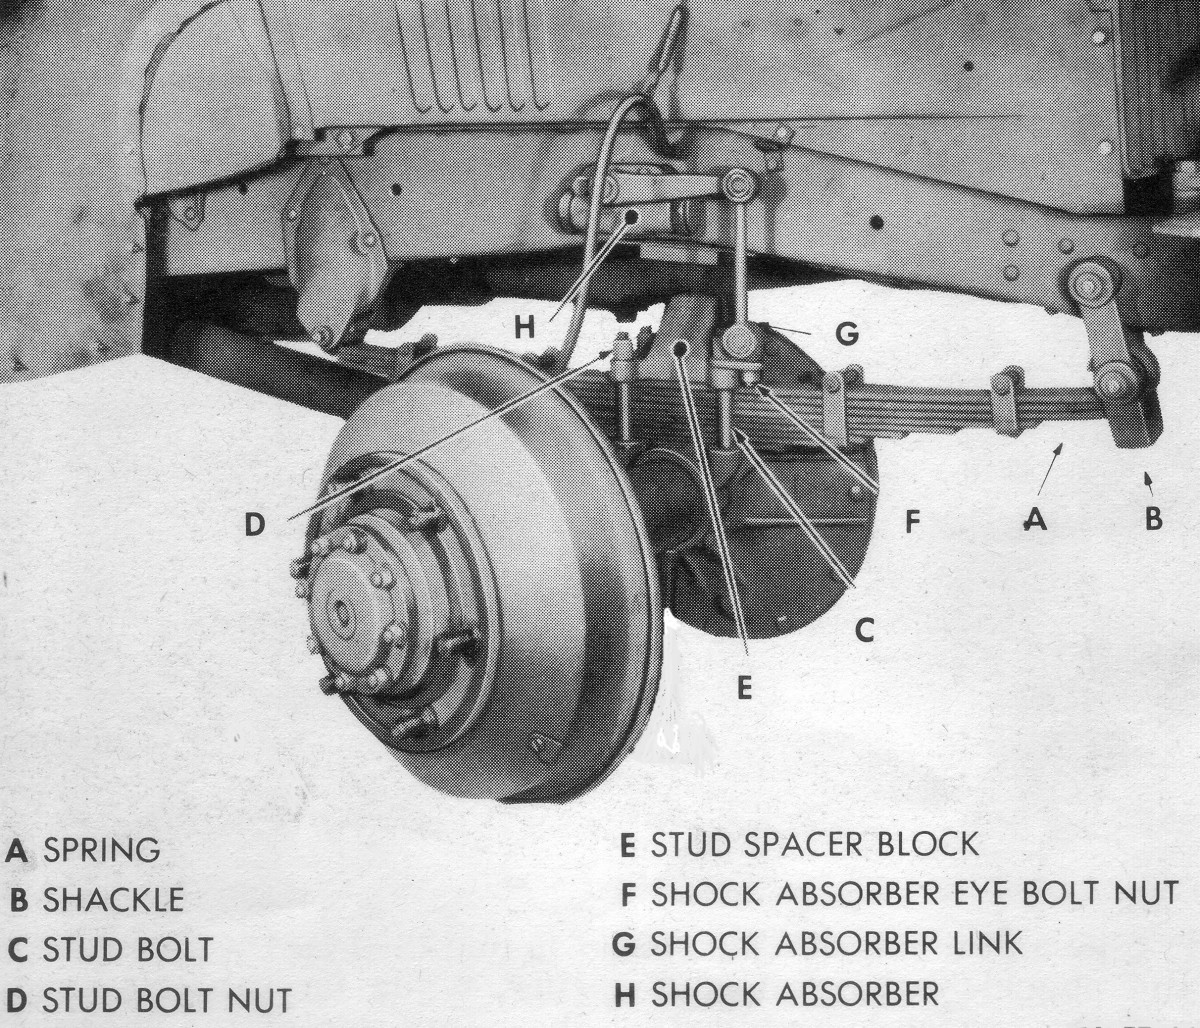 The first step in inspecting a vehicle's front axle and steering components is to jack the front wheels off the ground with the jacks on the vehicle's fame or front bumper so the whole front axle assembly hangs from its springs. It is not necessary to remove the tires and wheels.